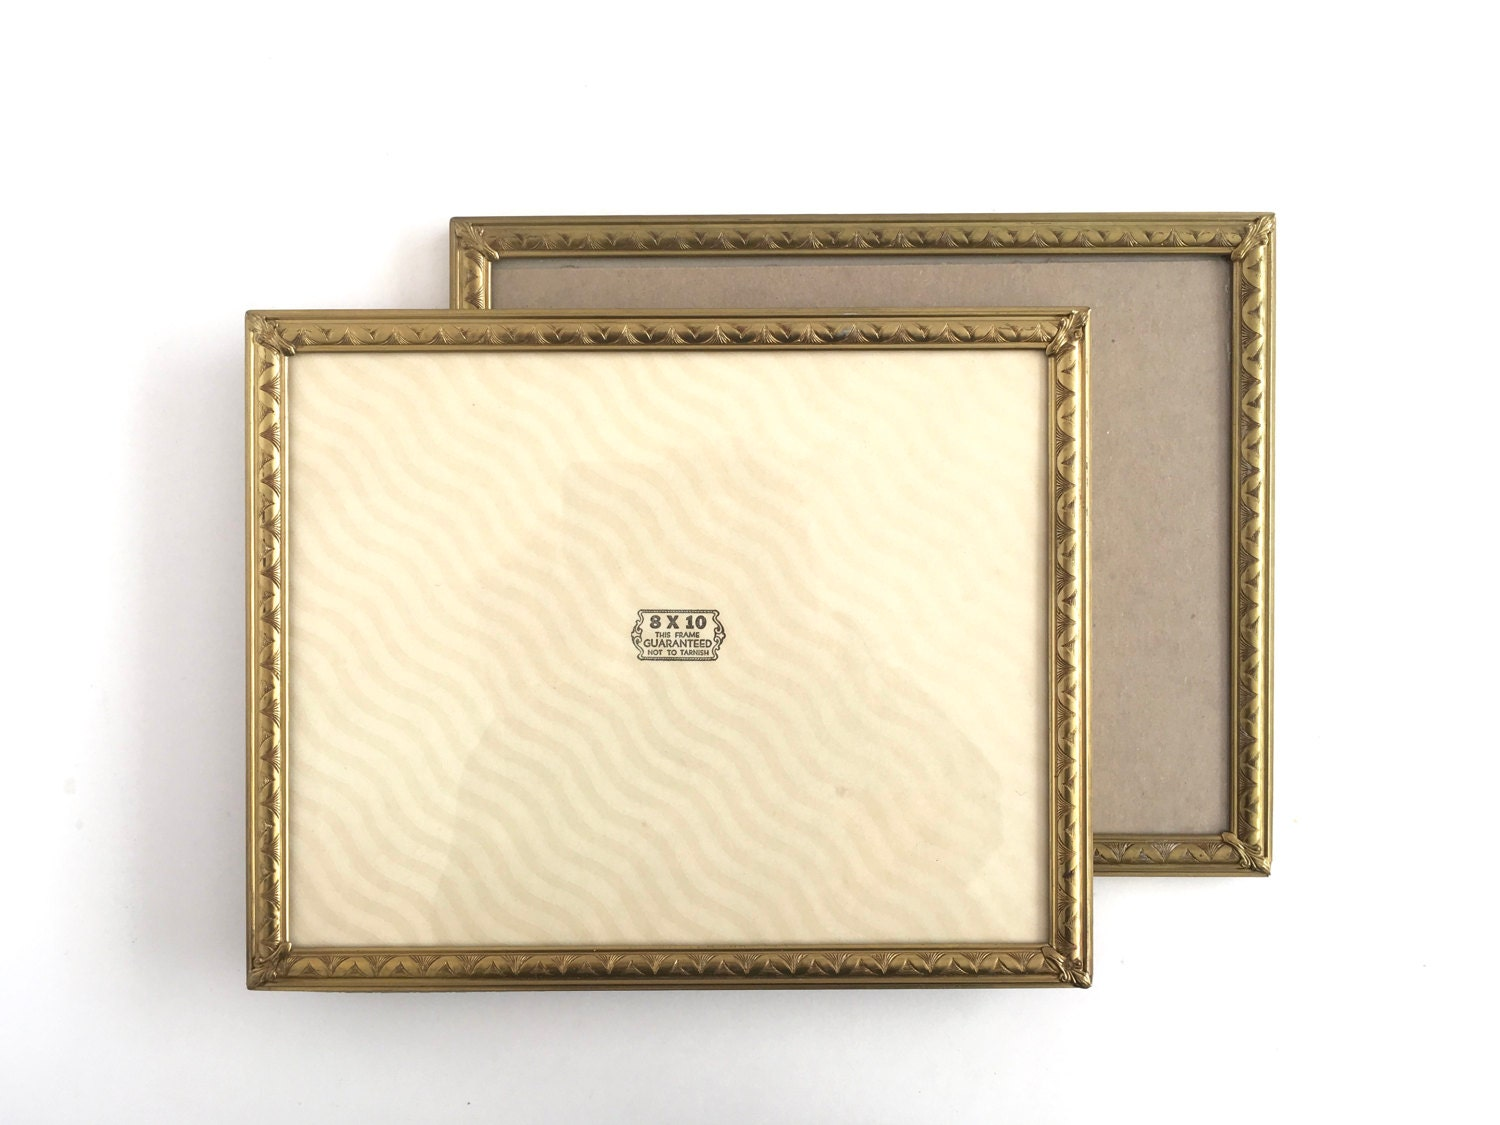 Vintage Large Brass Frames Picture Photo Ornate Gold Decorative 8 x ...